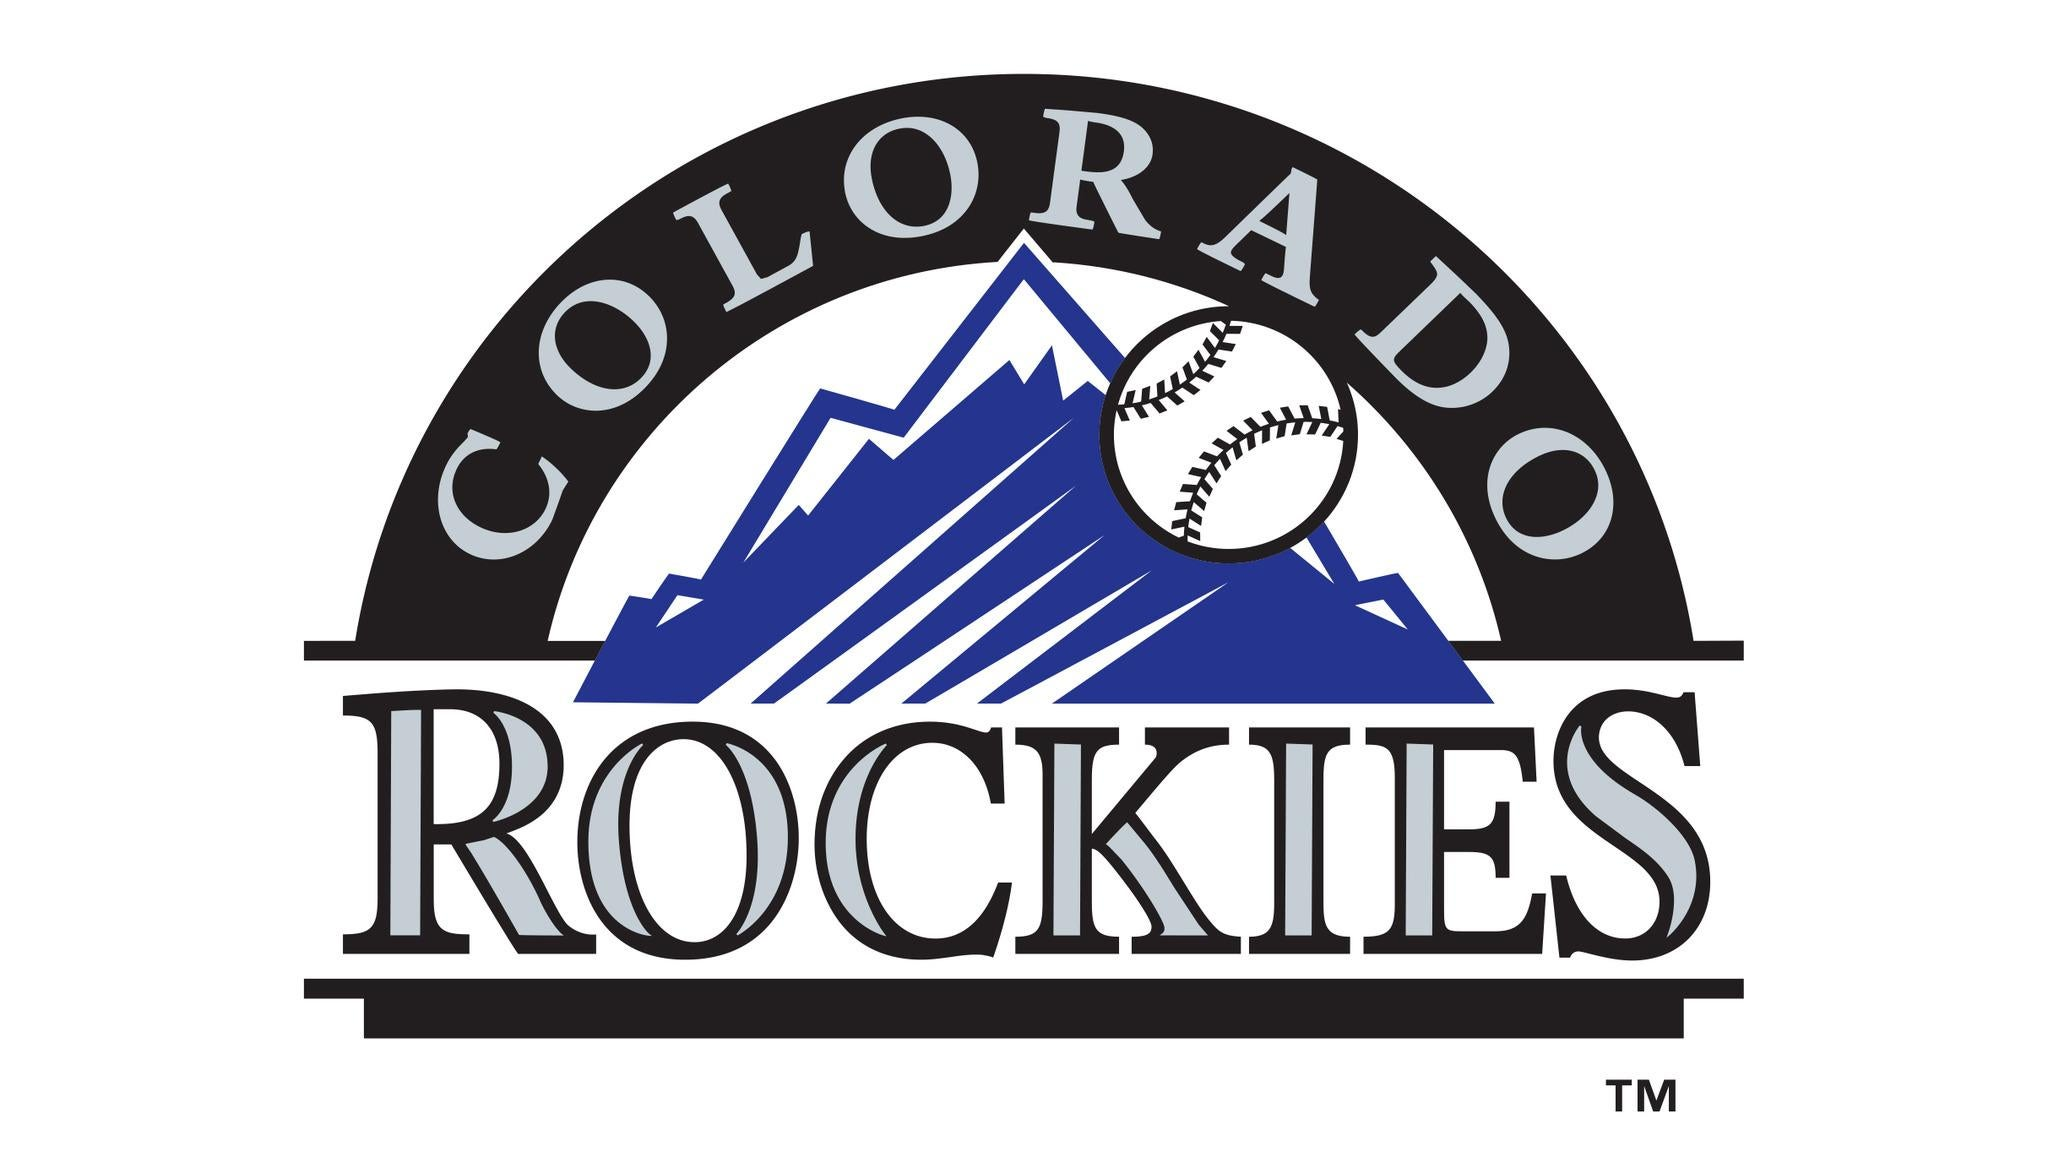 Colorado Rockies vs. San Diego Padres at Coors Field - Denver, CO 80205